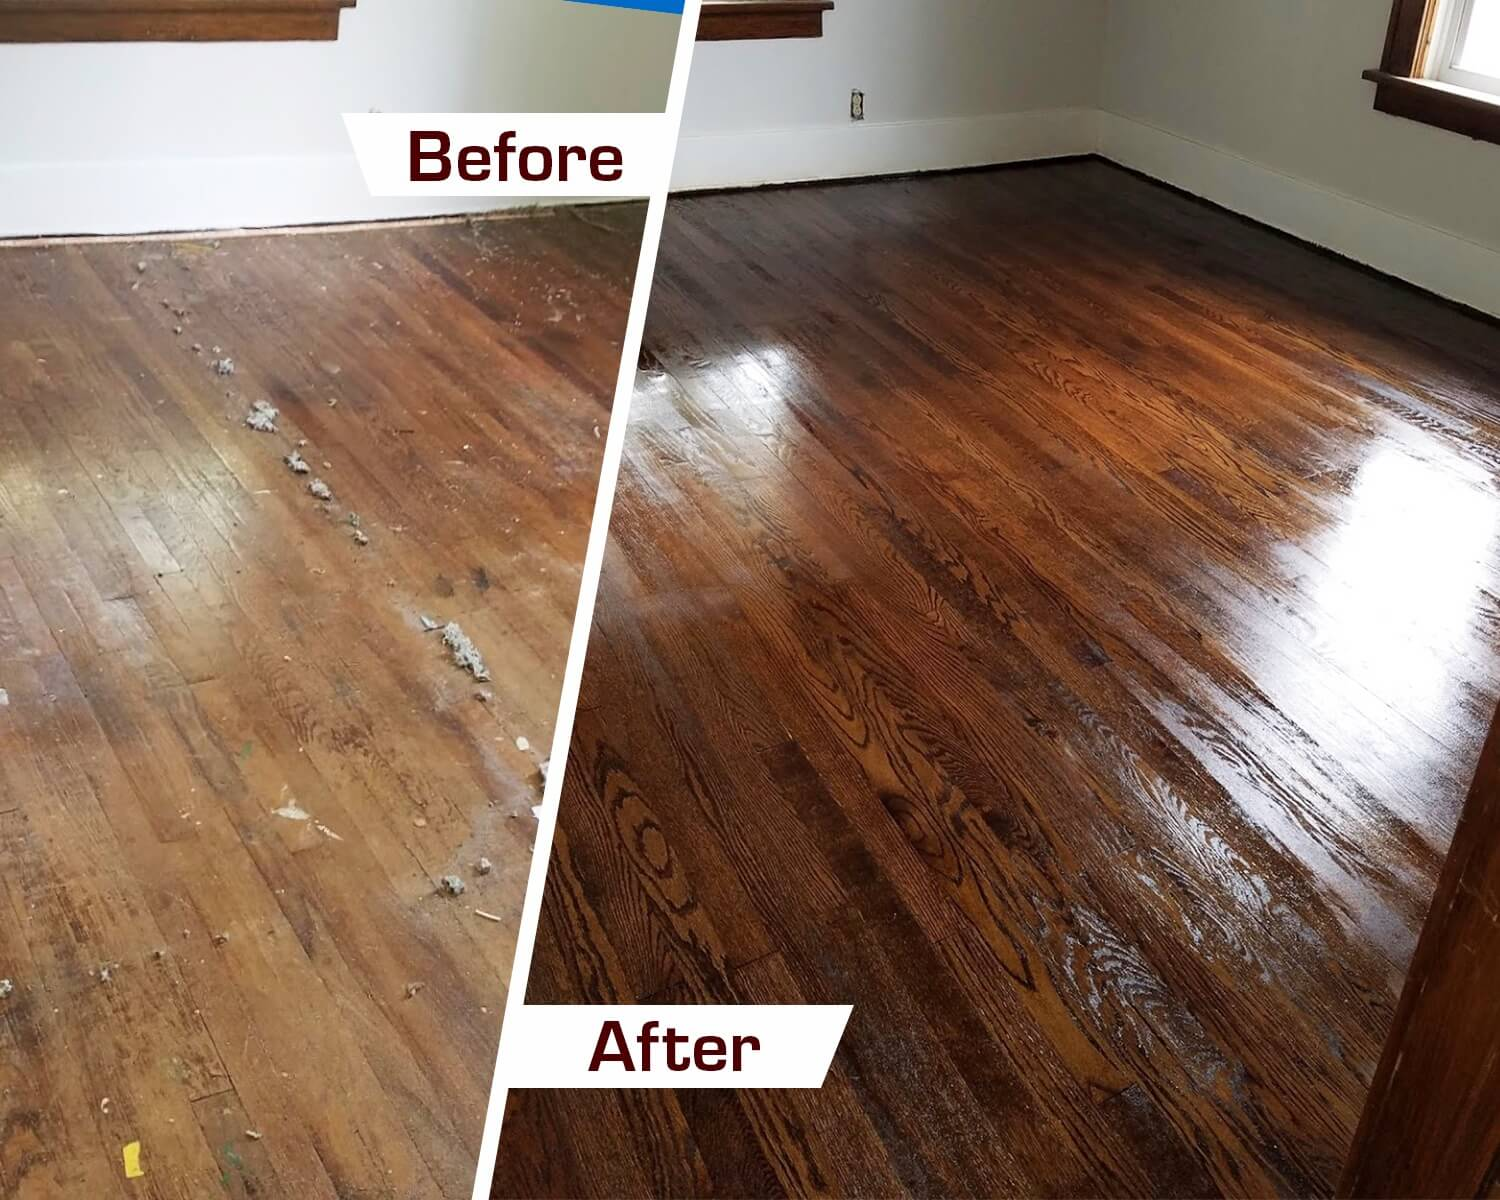 before and after hardwood floor refinishing in Naperville, IL